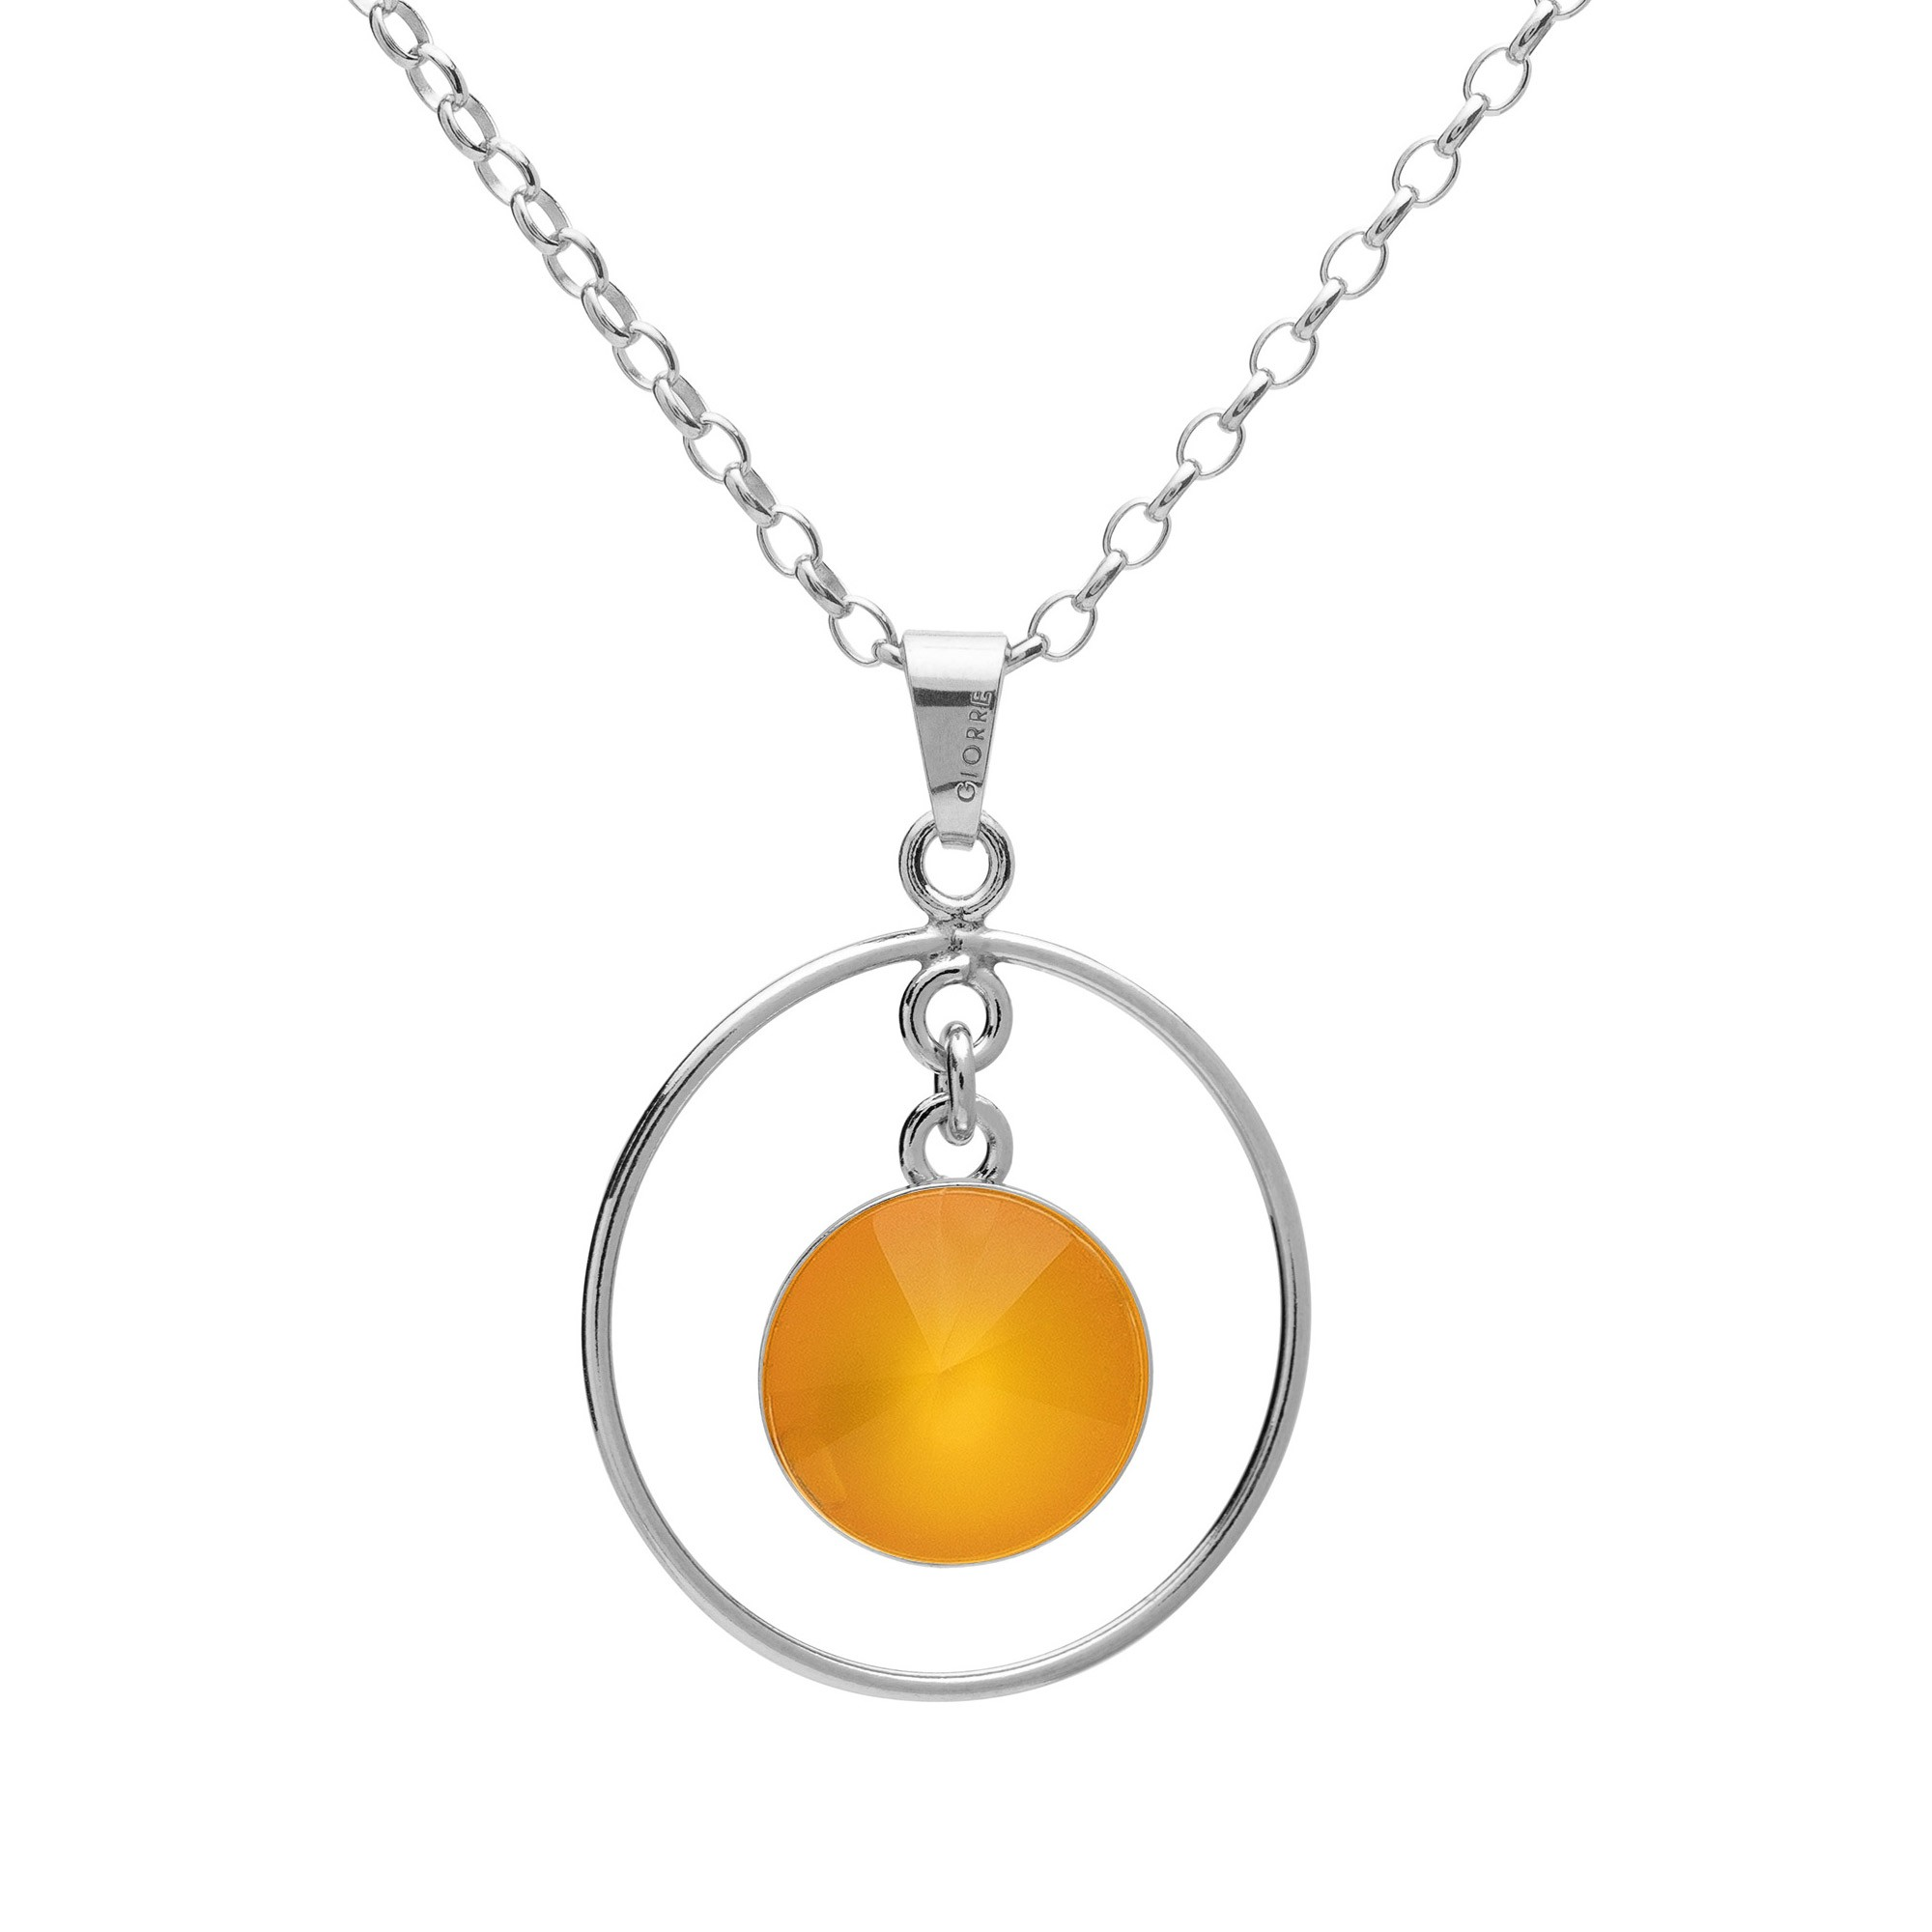 Round pendant natural stone necklace, sterling silver 925